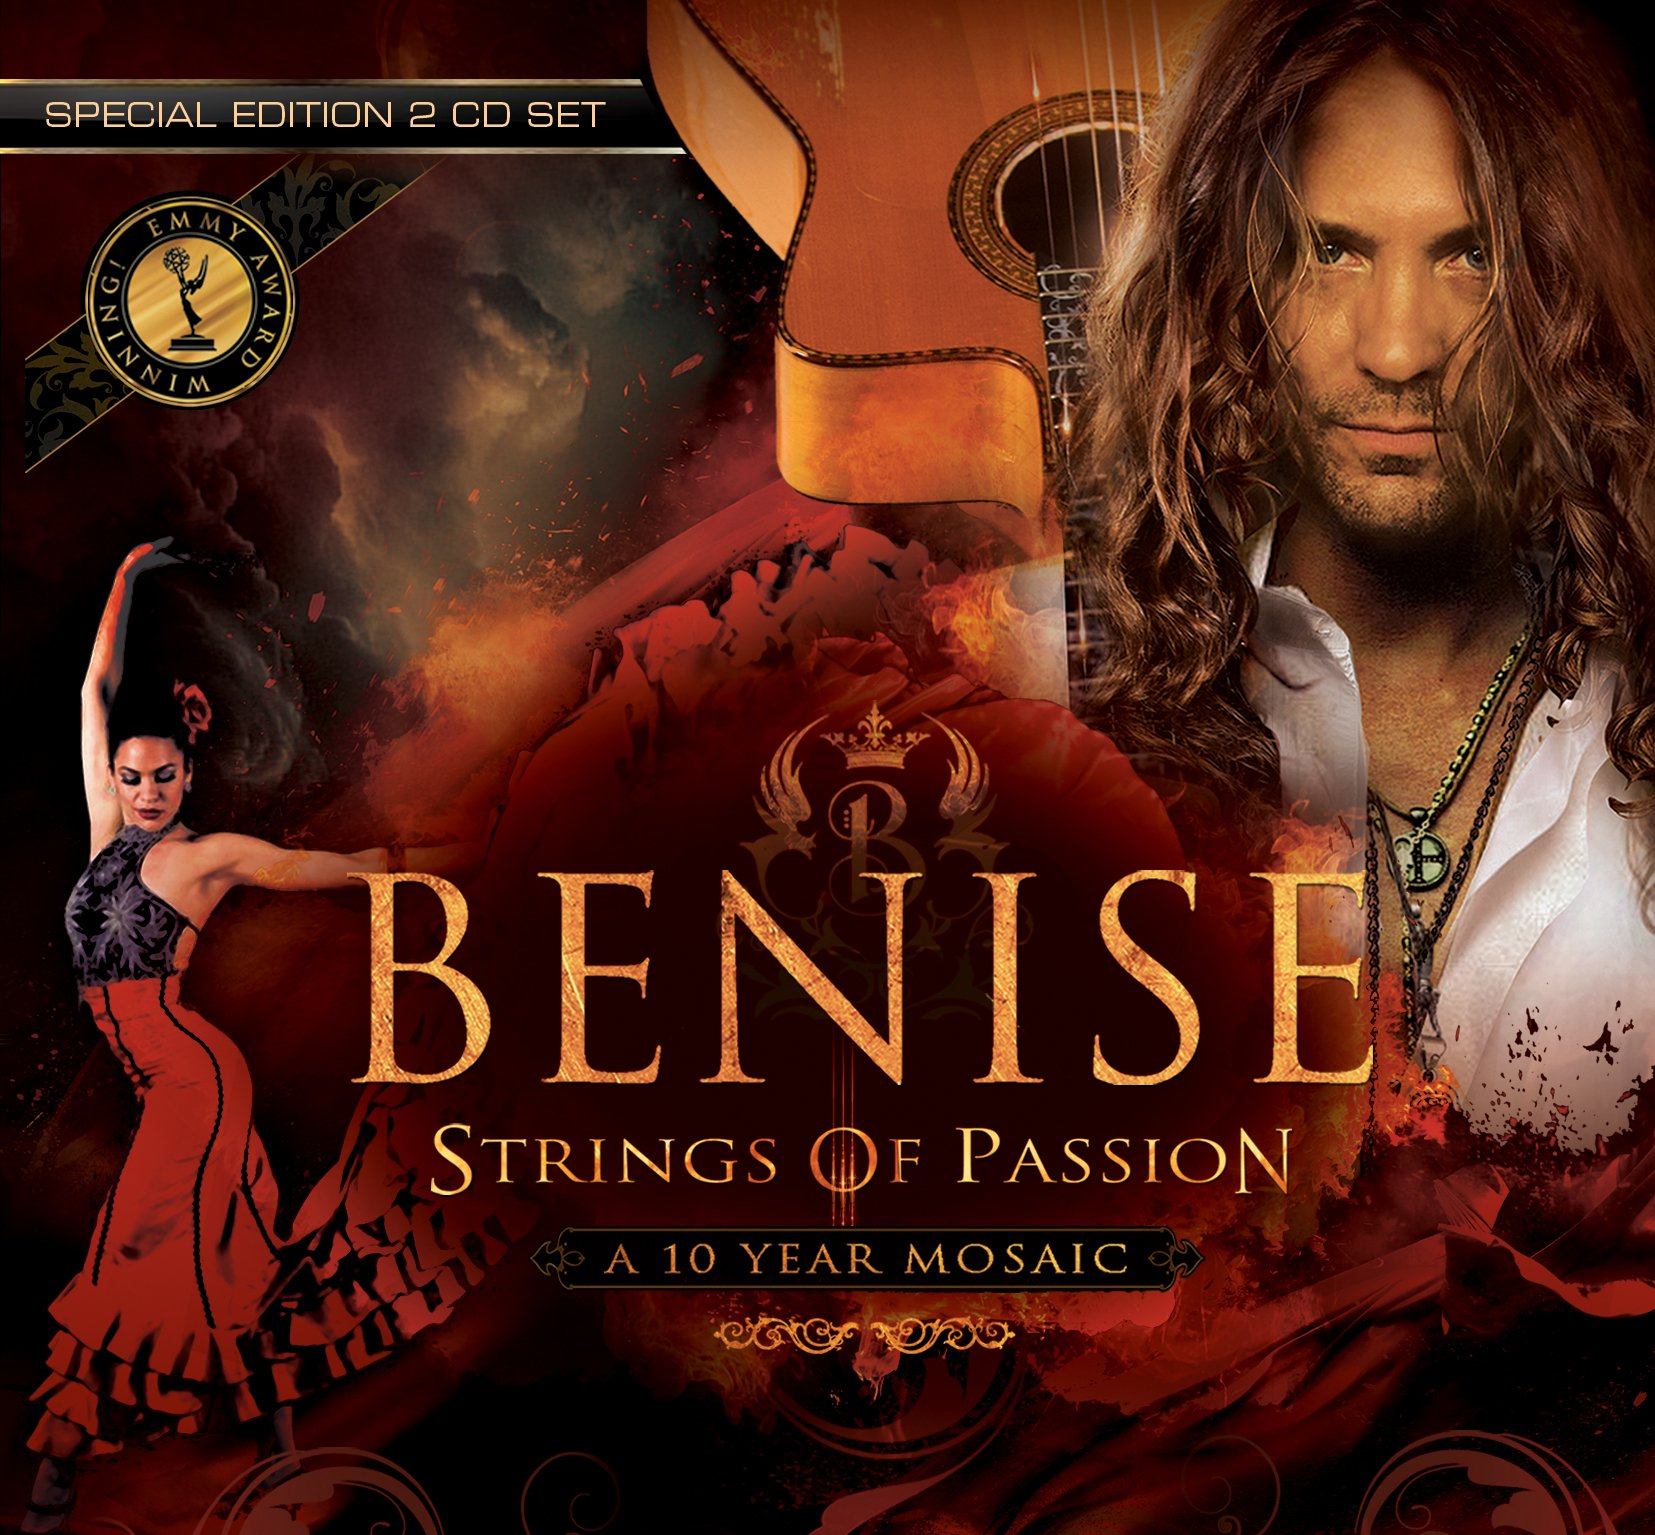 Strings of Passion - A 10 Year Mosaic by Cd Baby